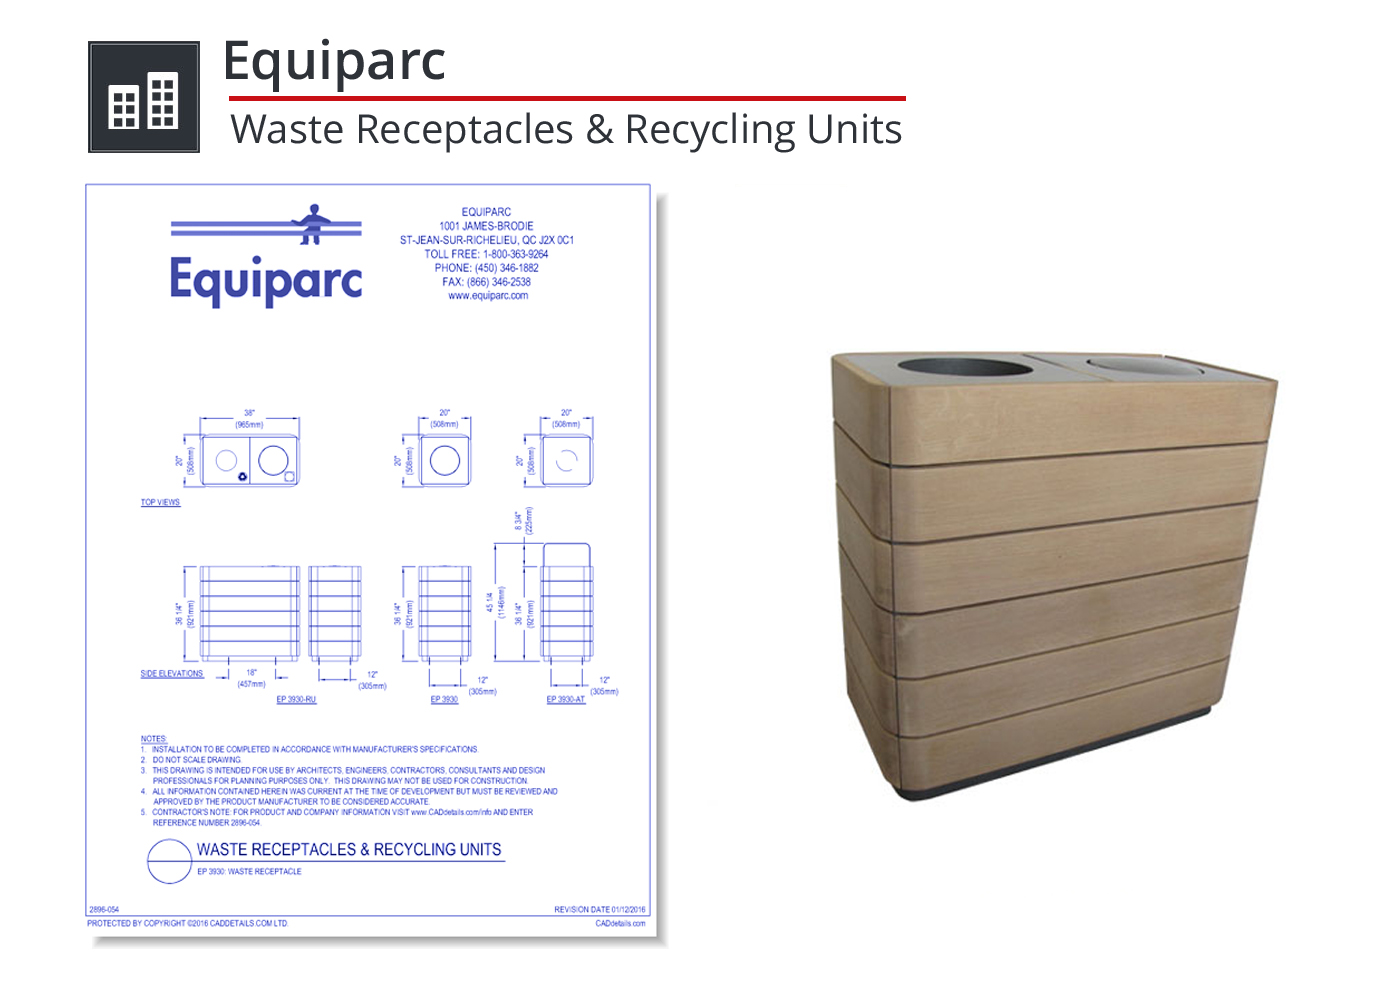 Equiparc-Waste-Receptacles-and-Recycling-Units-CADdrawing.jpg